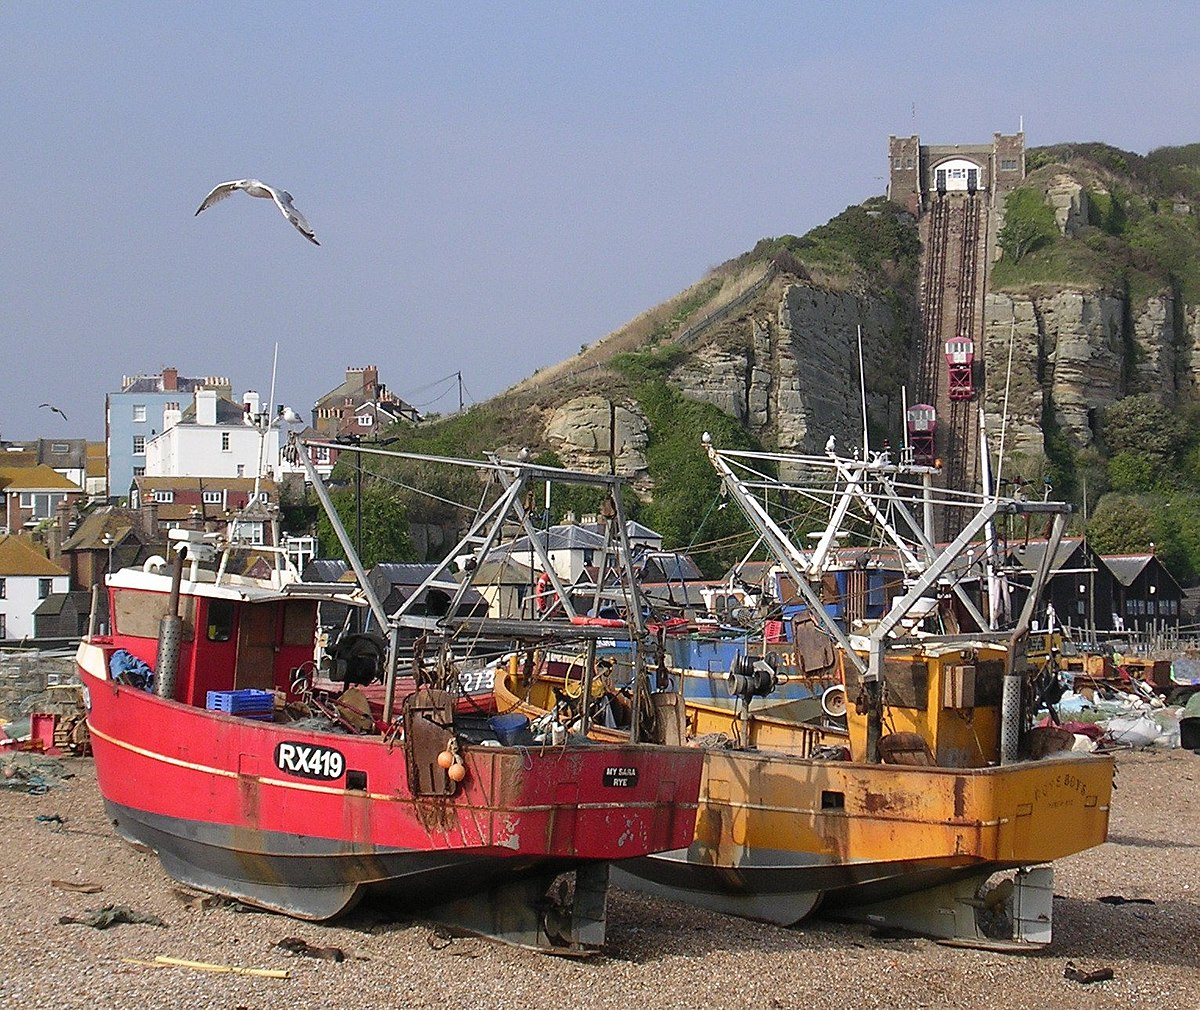 Old Fishing Boats On Beach: File:Hastings Fishing Boats On Beach + Cliff Railway + Old